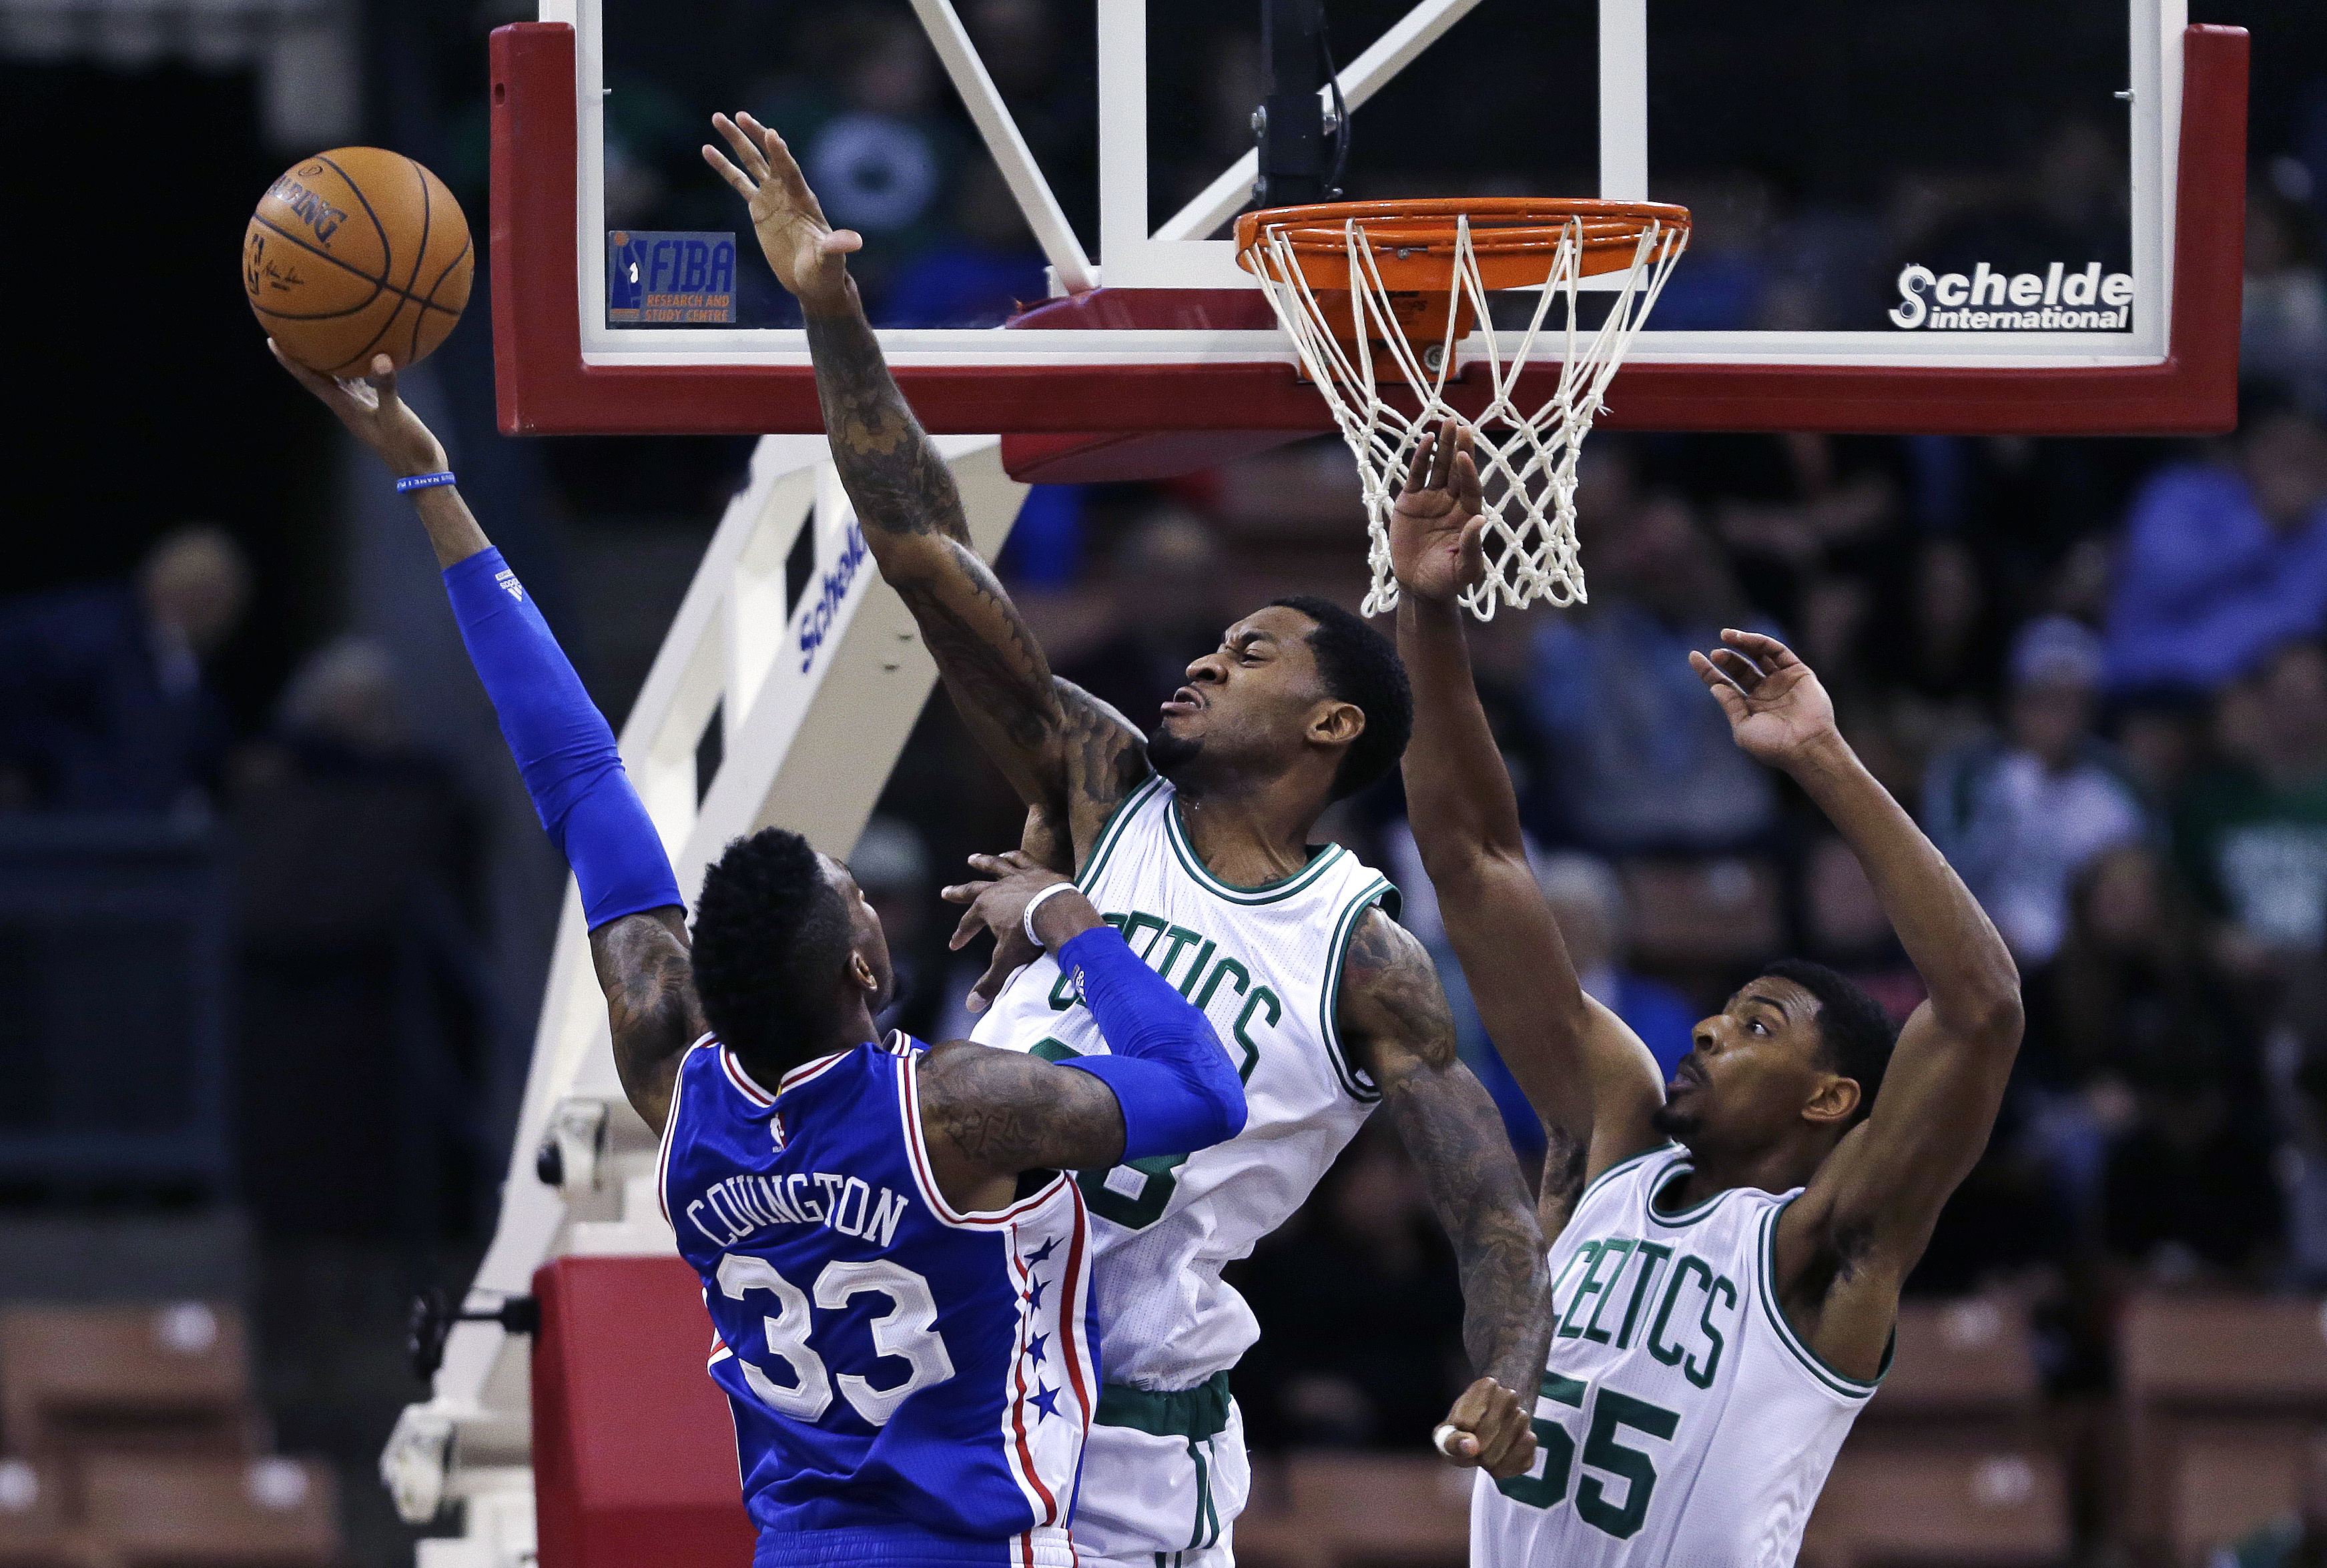 Philadelphia 76ers forward Robert Covington (33) is fouled by Boston Celtics forward Perry Jones, center, while driving to the basket during the second half of a preseason NBA basketball game in Manchester, N.H., Friday, Oct. 23, 2015. Covington was helpe